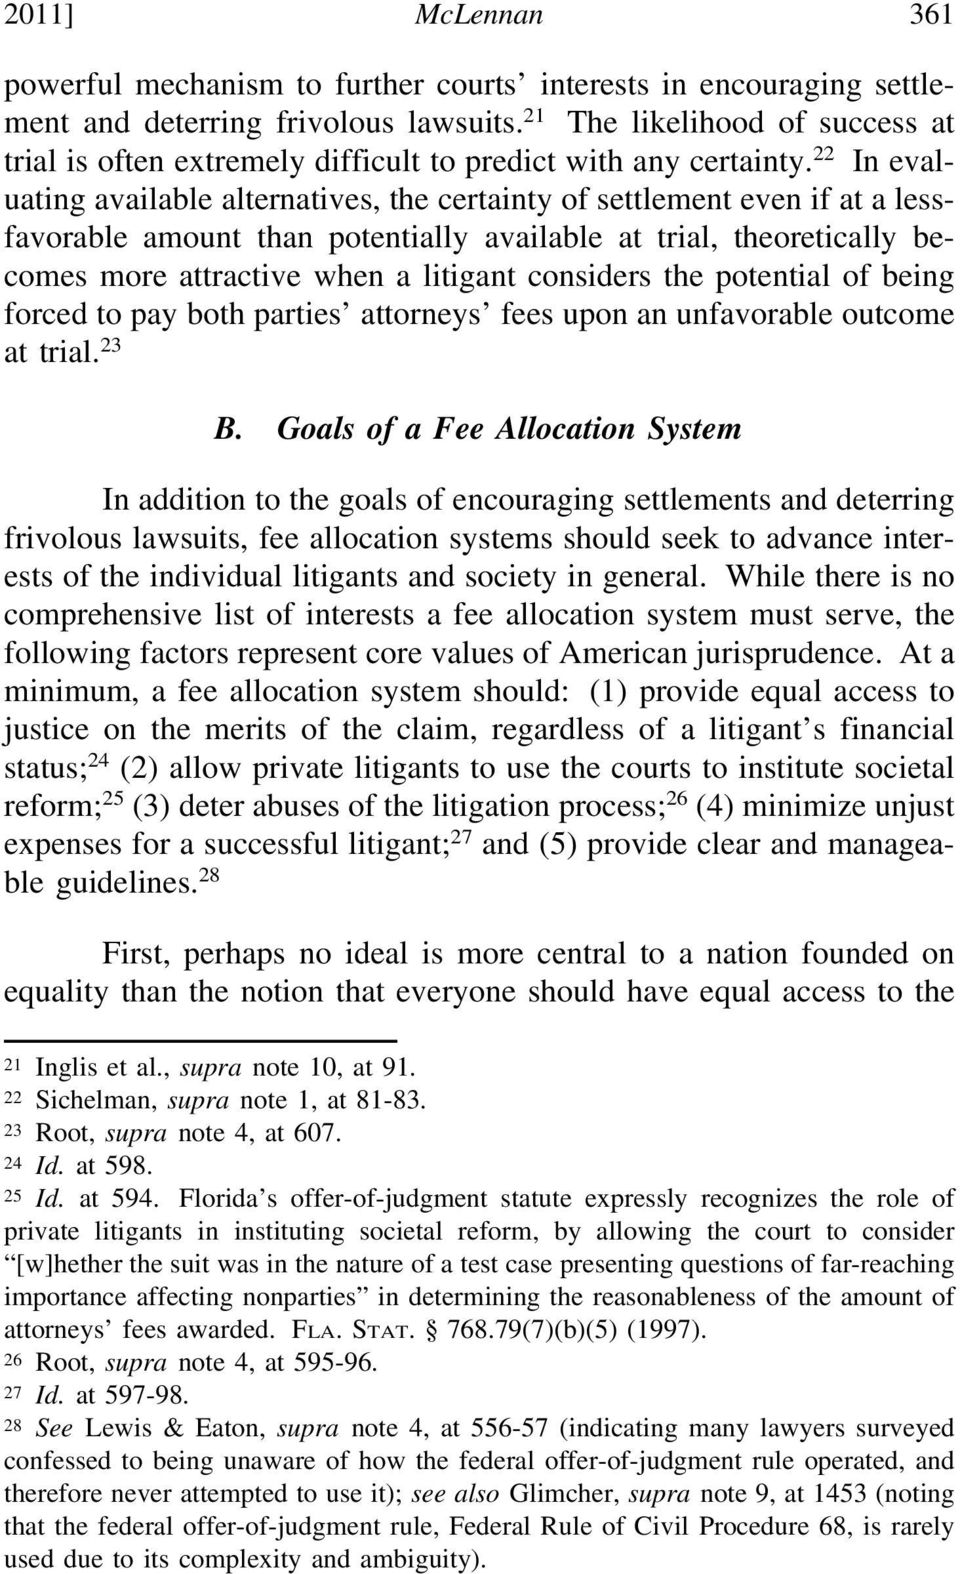 22 In evaluating available alternatives, the certainty of settlement even if at a lessfavorable amount than potentially available at trial, theoretically becomes more attractive when a litigant